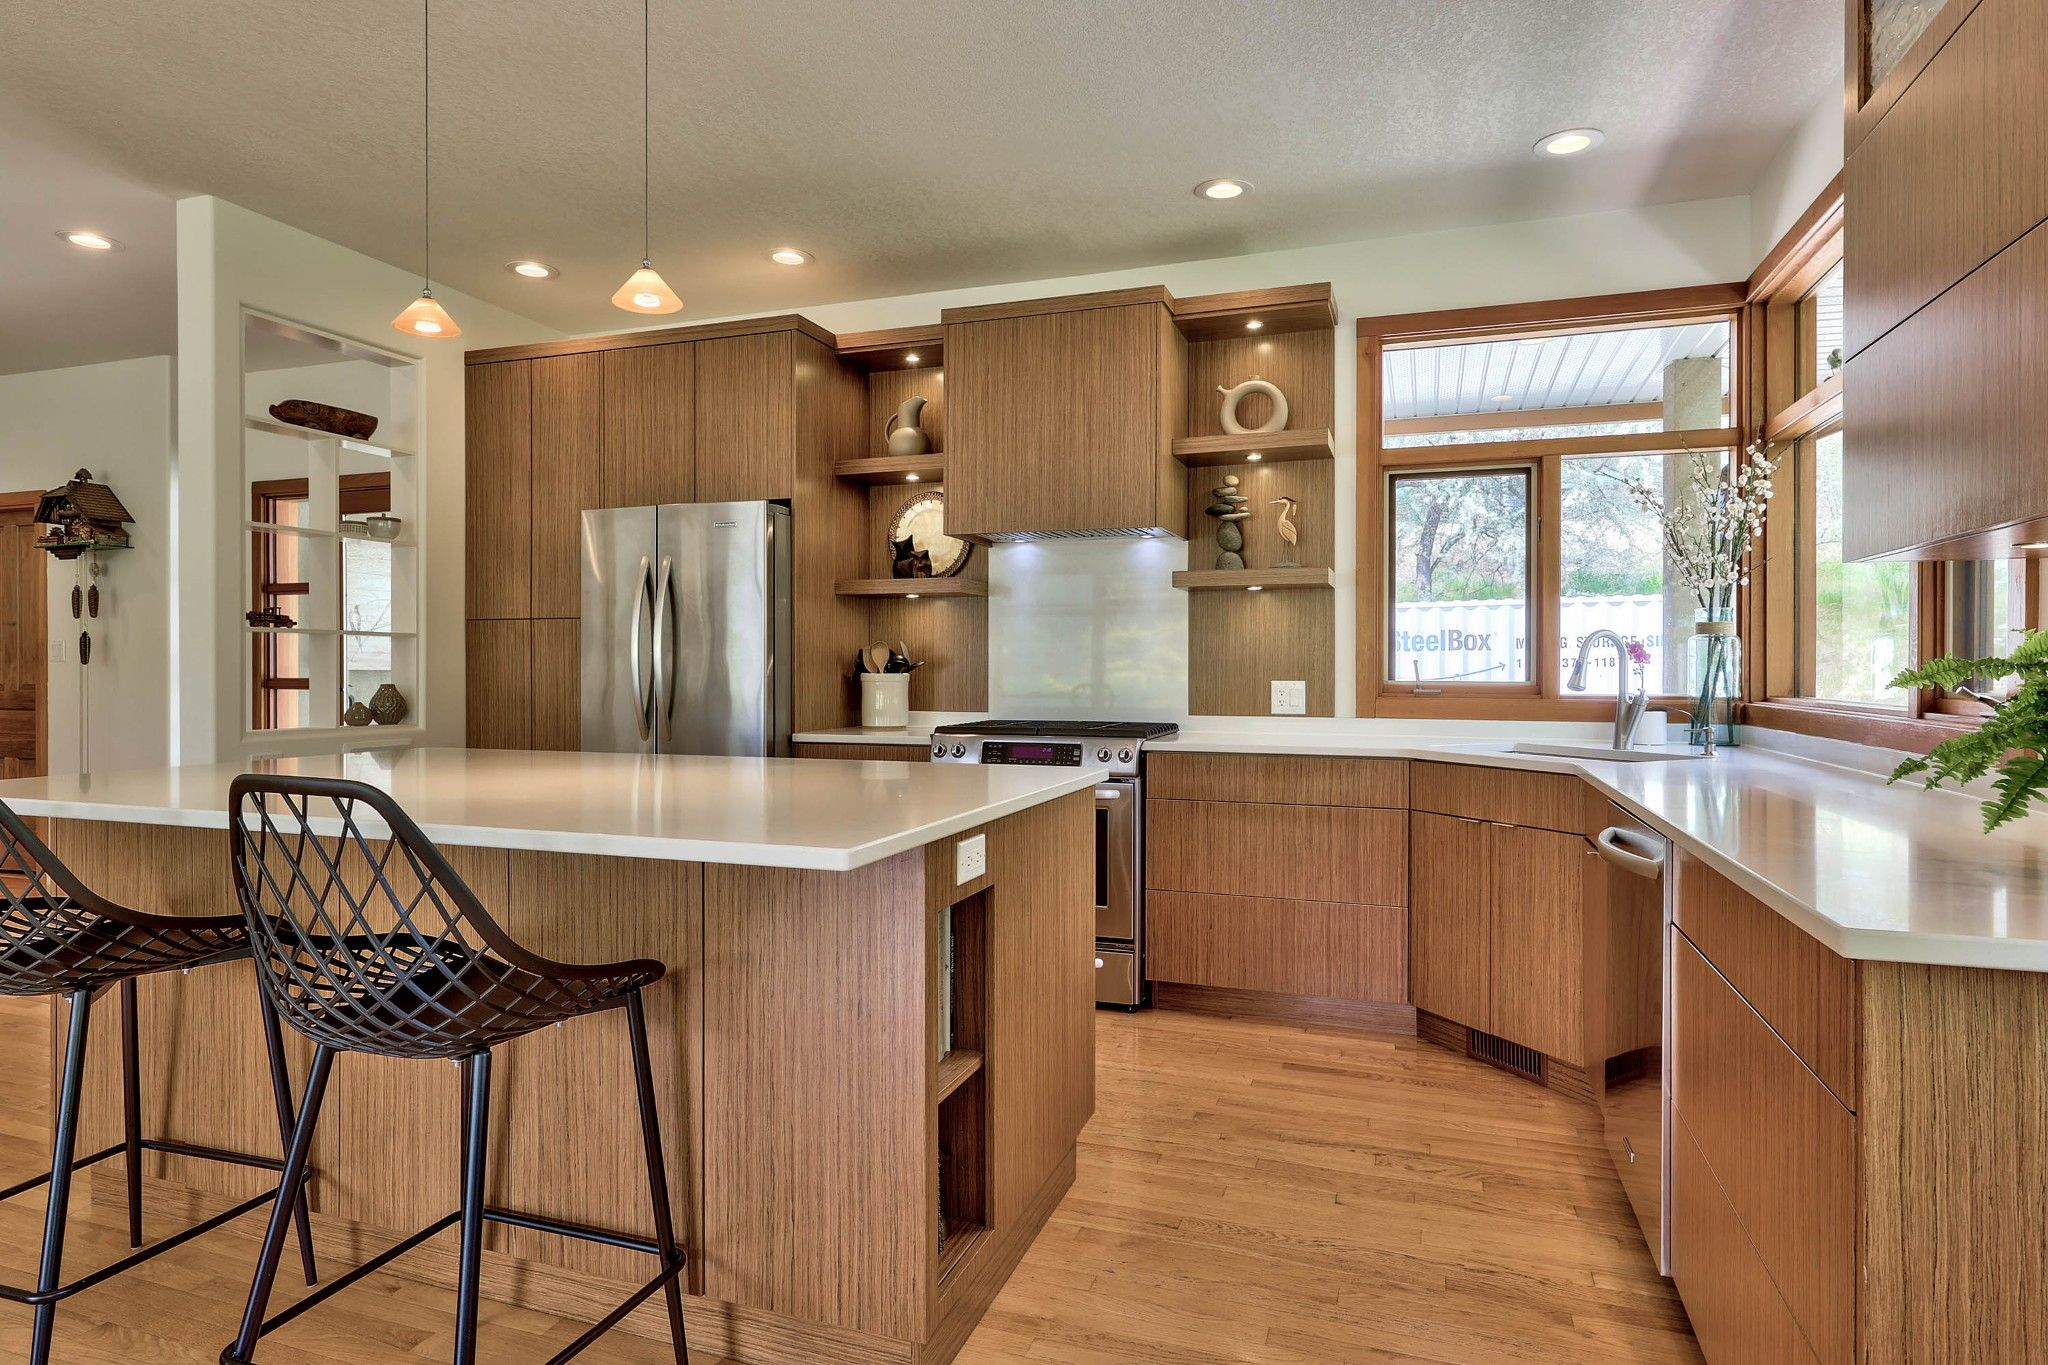 Photo 9: Photos: 3299 E Shuswap Road in Kamloops: South Thompson Valley House for sale : MLS®# 162162